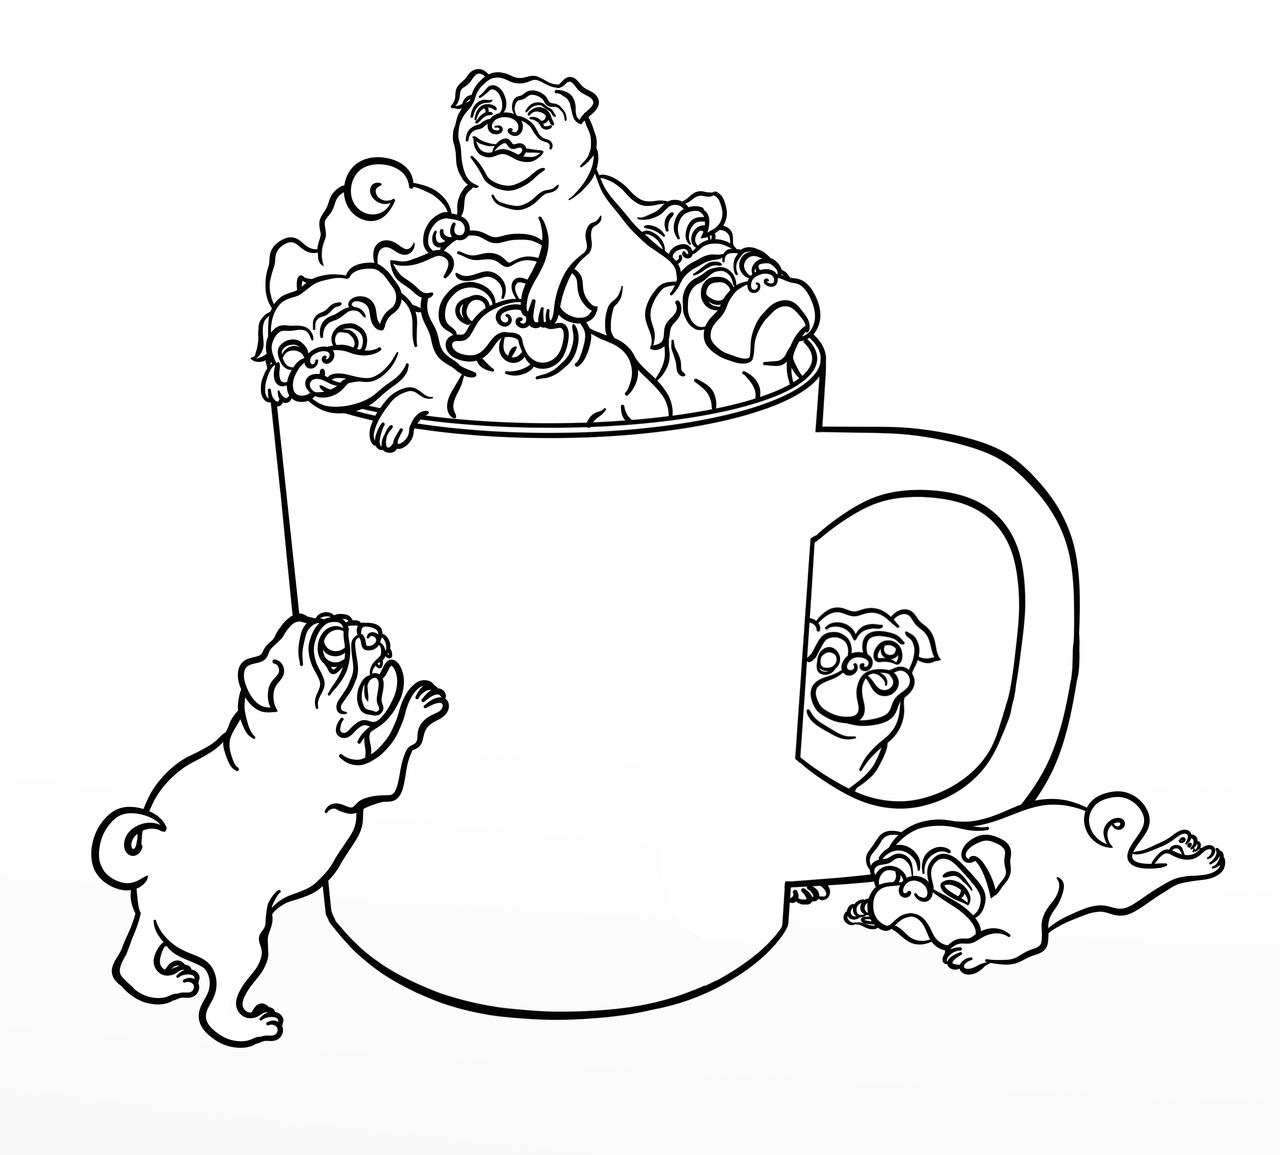 Pug Coloring Pages Best Coloring Pages For Kids Puppy Coloring Pages Cute Coloring Pages Dog Coloring Page